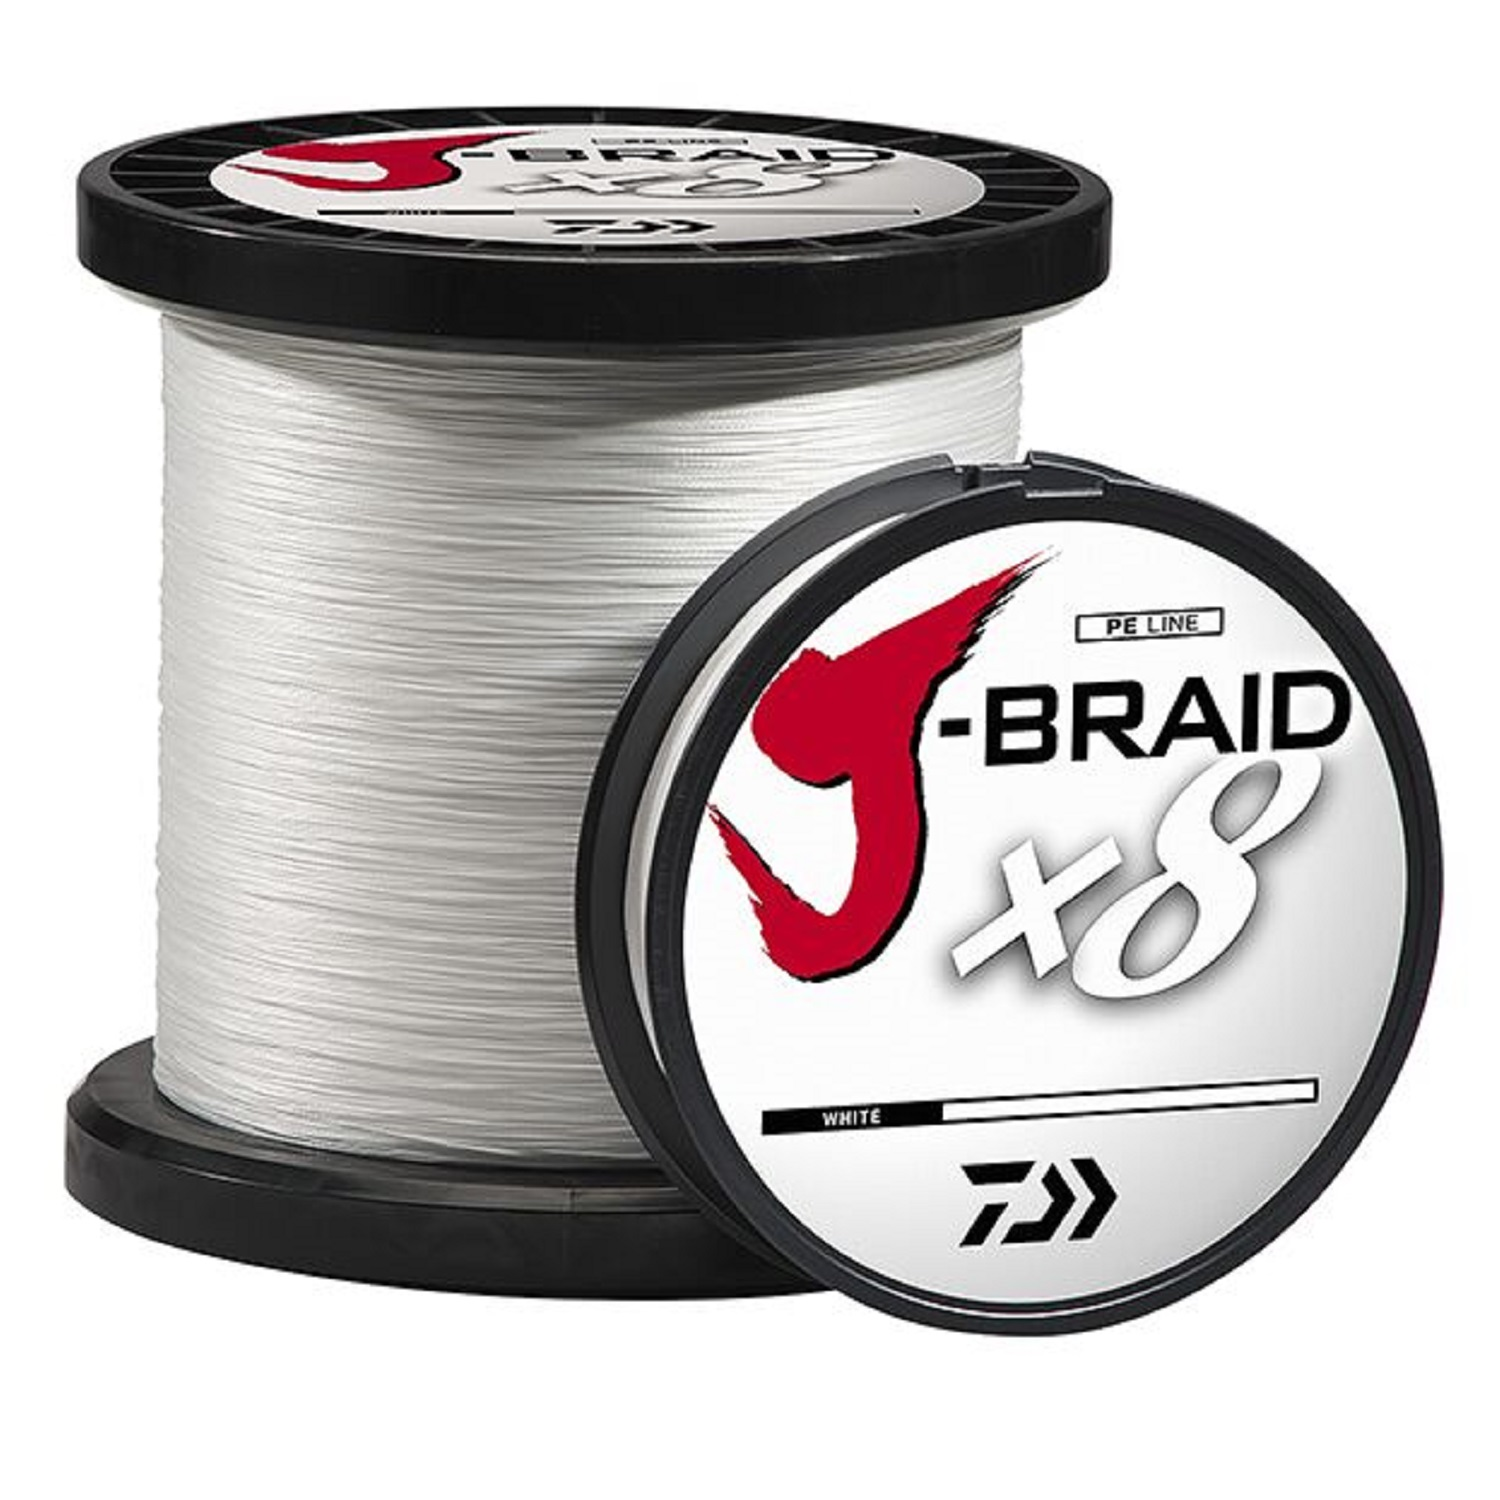 Daiwa J-Braid Fishing Line, 330 yds, White by Daiwa Corp